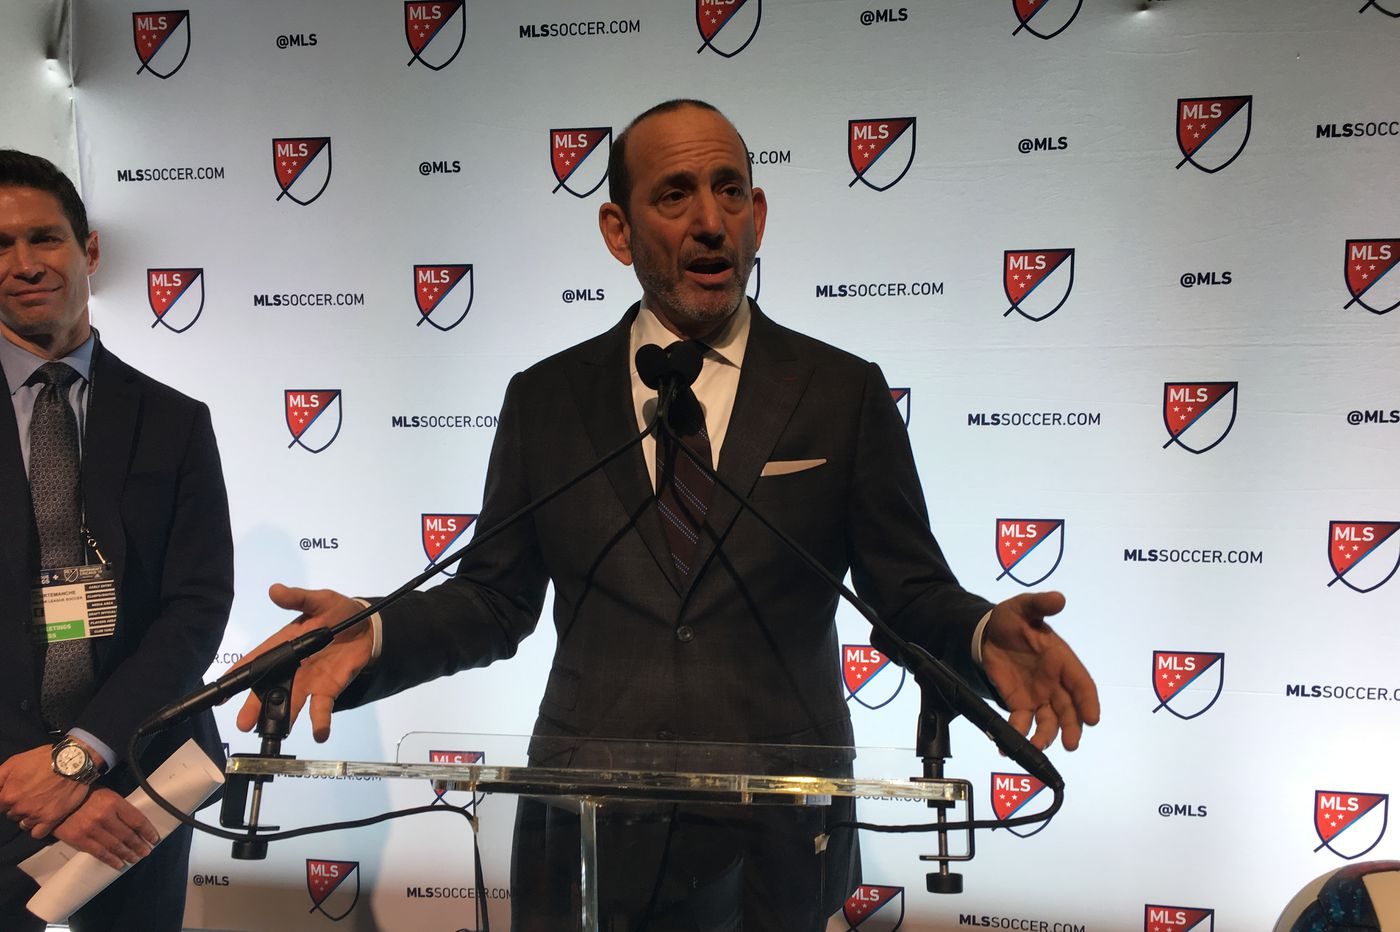 Union's dump of draft picks draws praise from other MLS teams and commissioner Don Garber